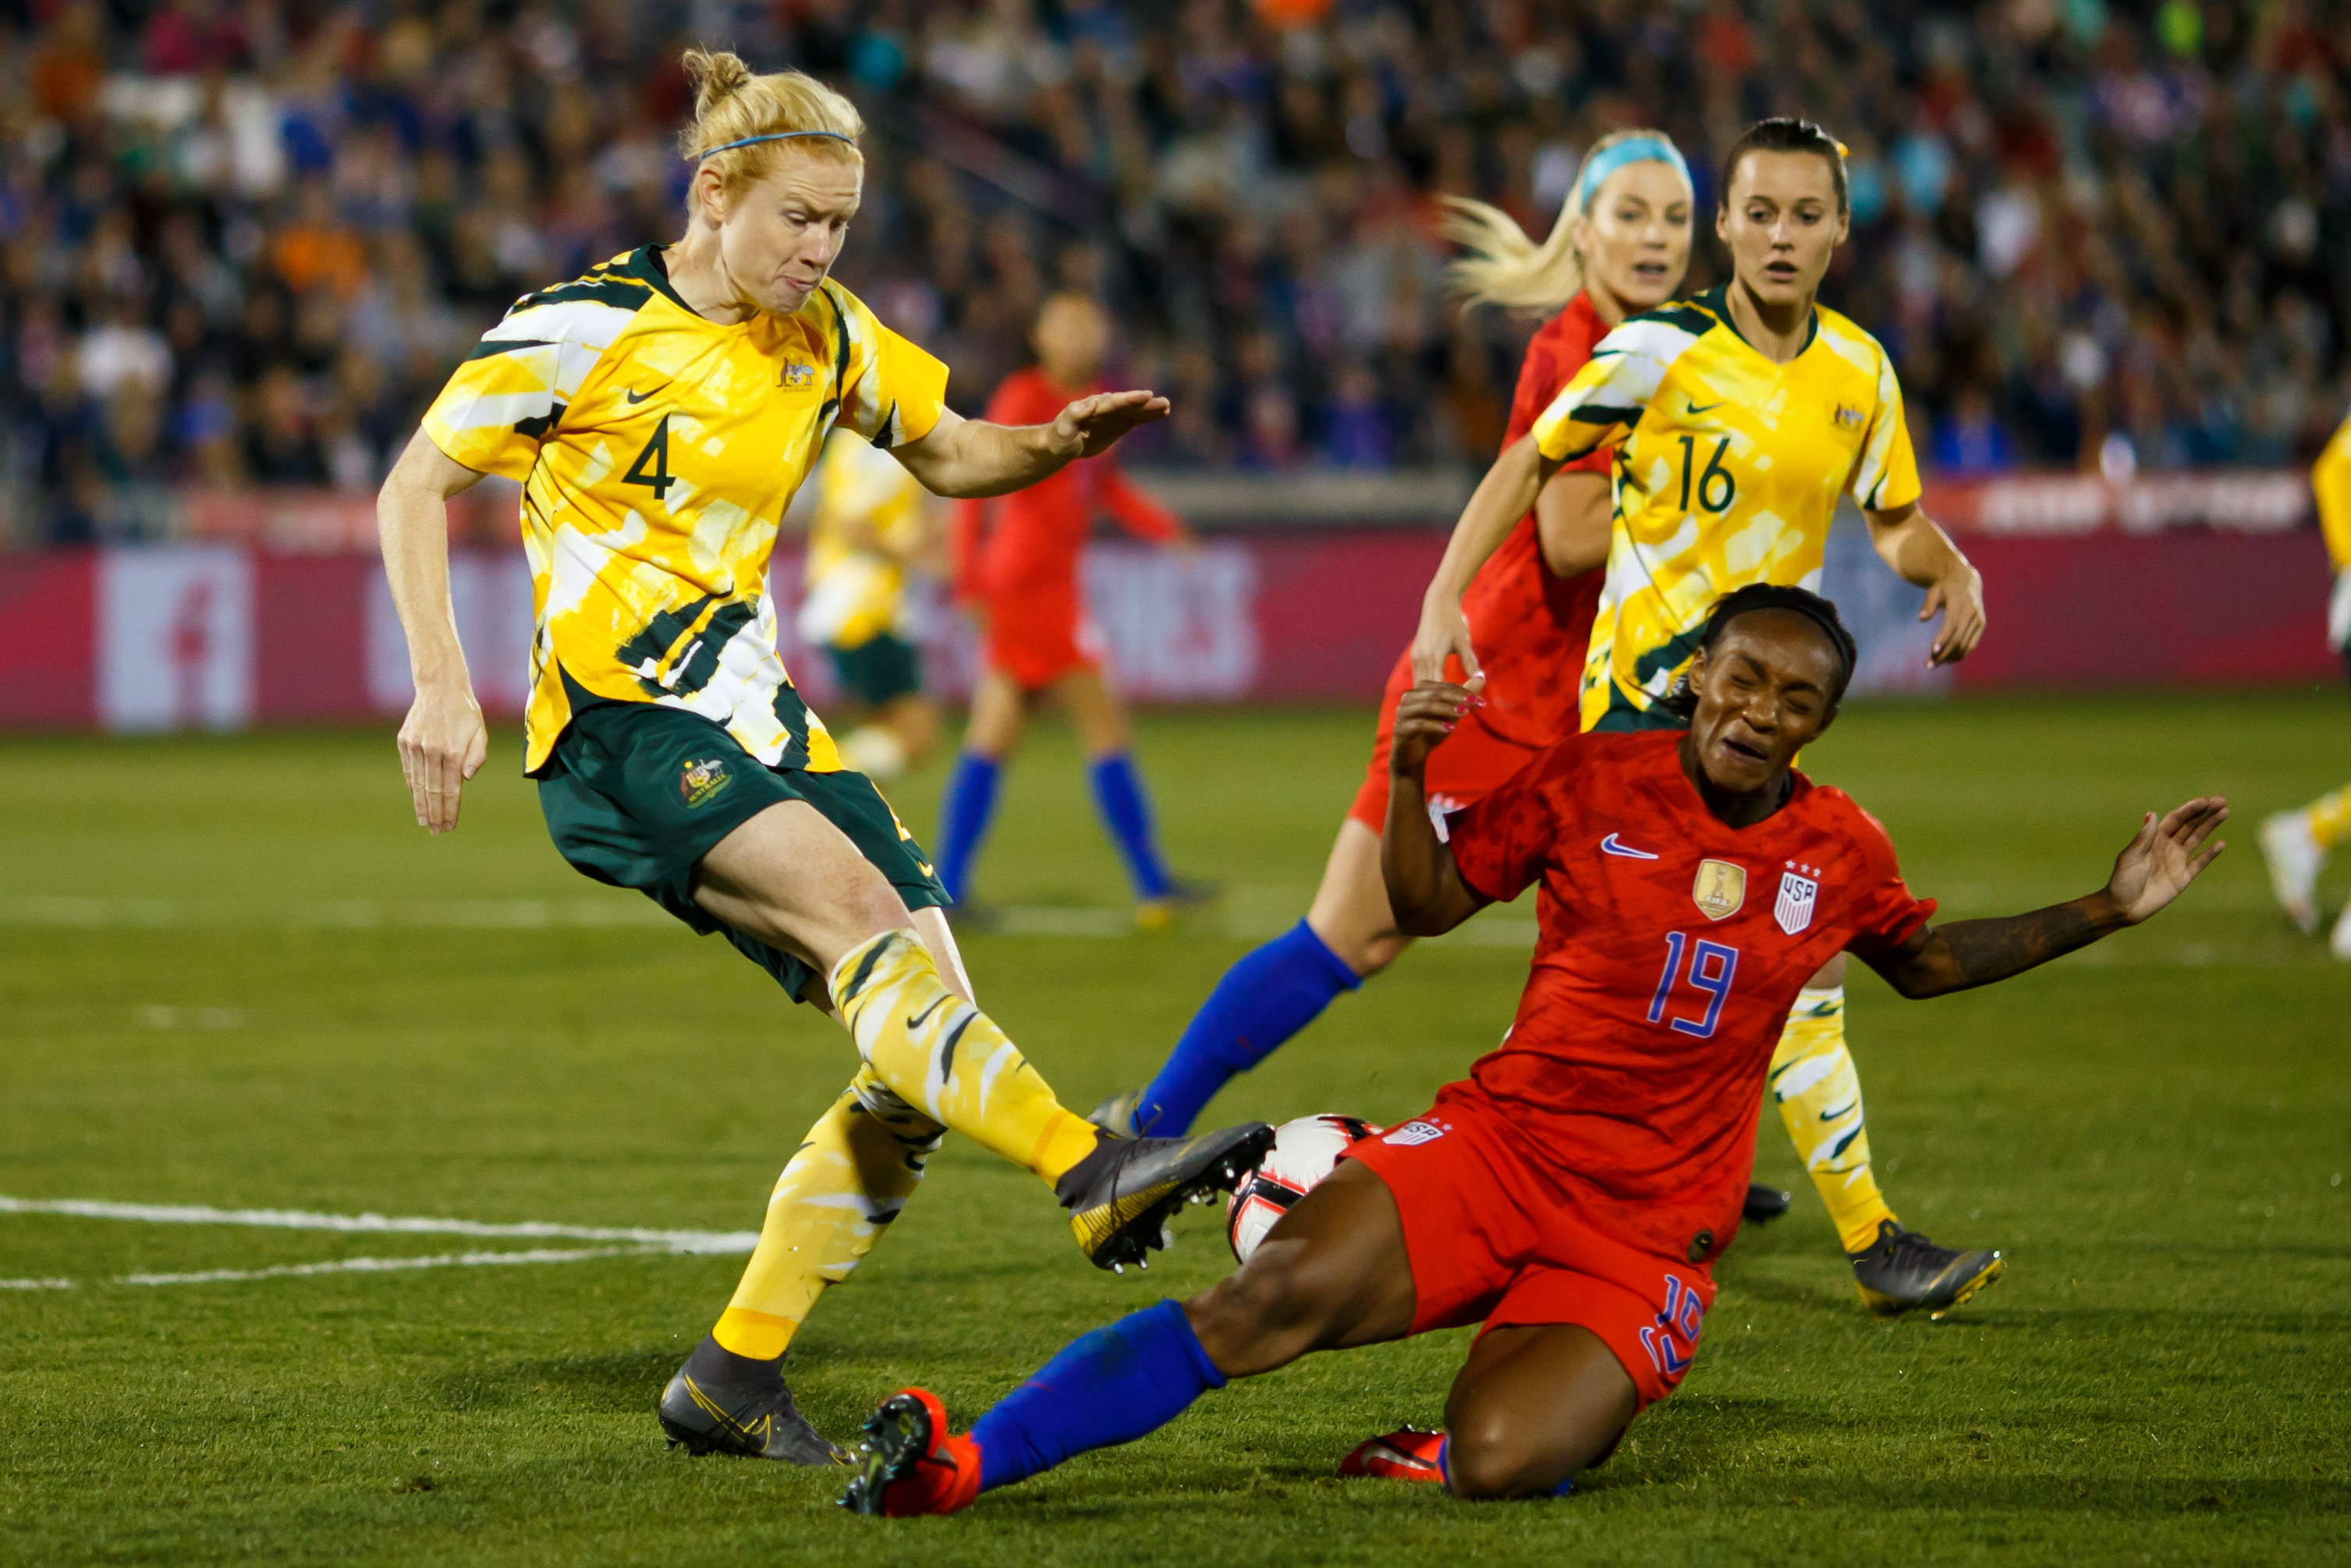 Clare Polkinghonre in action in the Westfield Matildas' last international against the USA